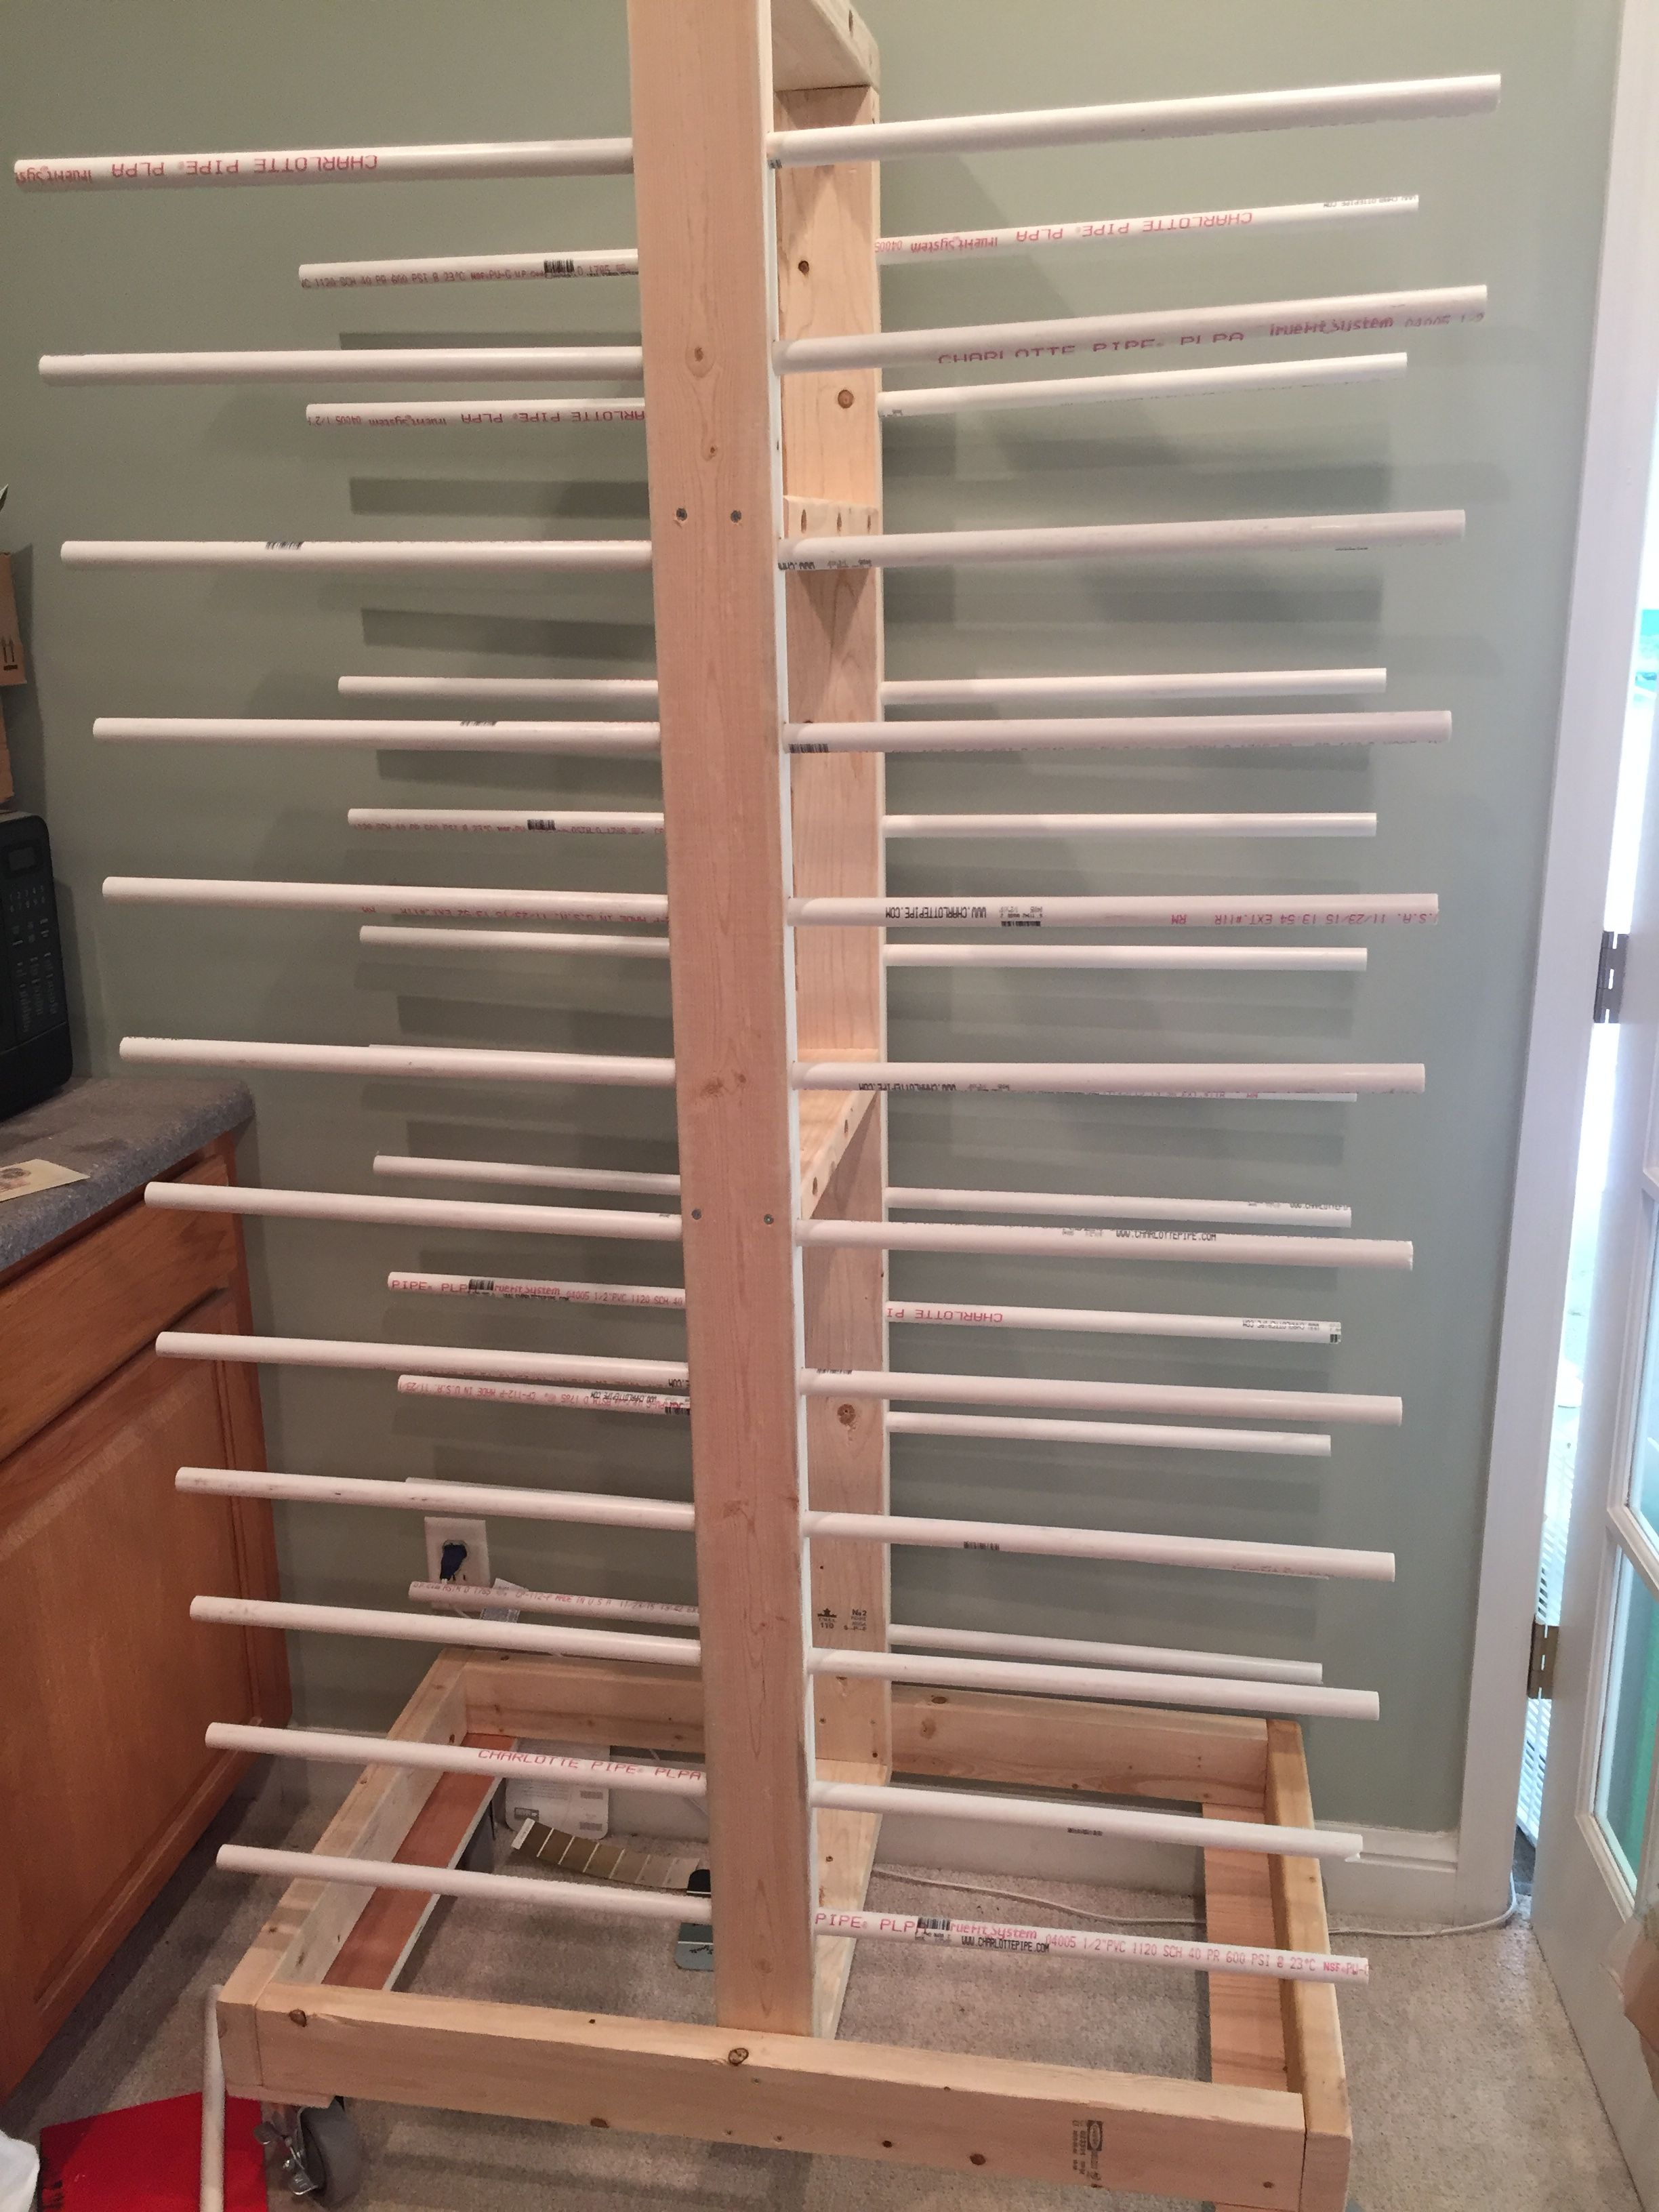 Cabinet Door Drying Rack Endearing Diy Cabinet Door Drying Rack From Pvc Pipe & 2X4 Lumber Wood Design Decoration